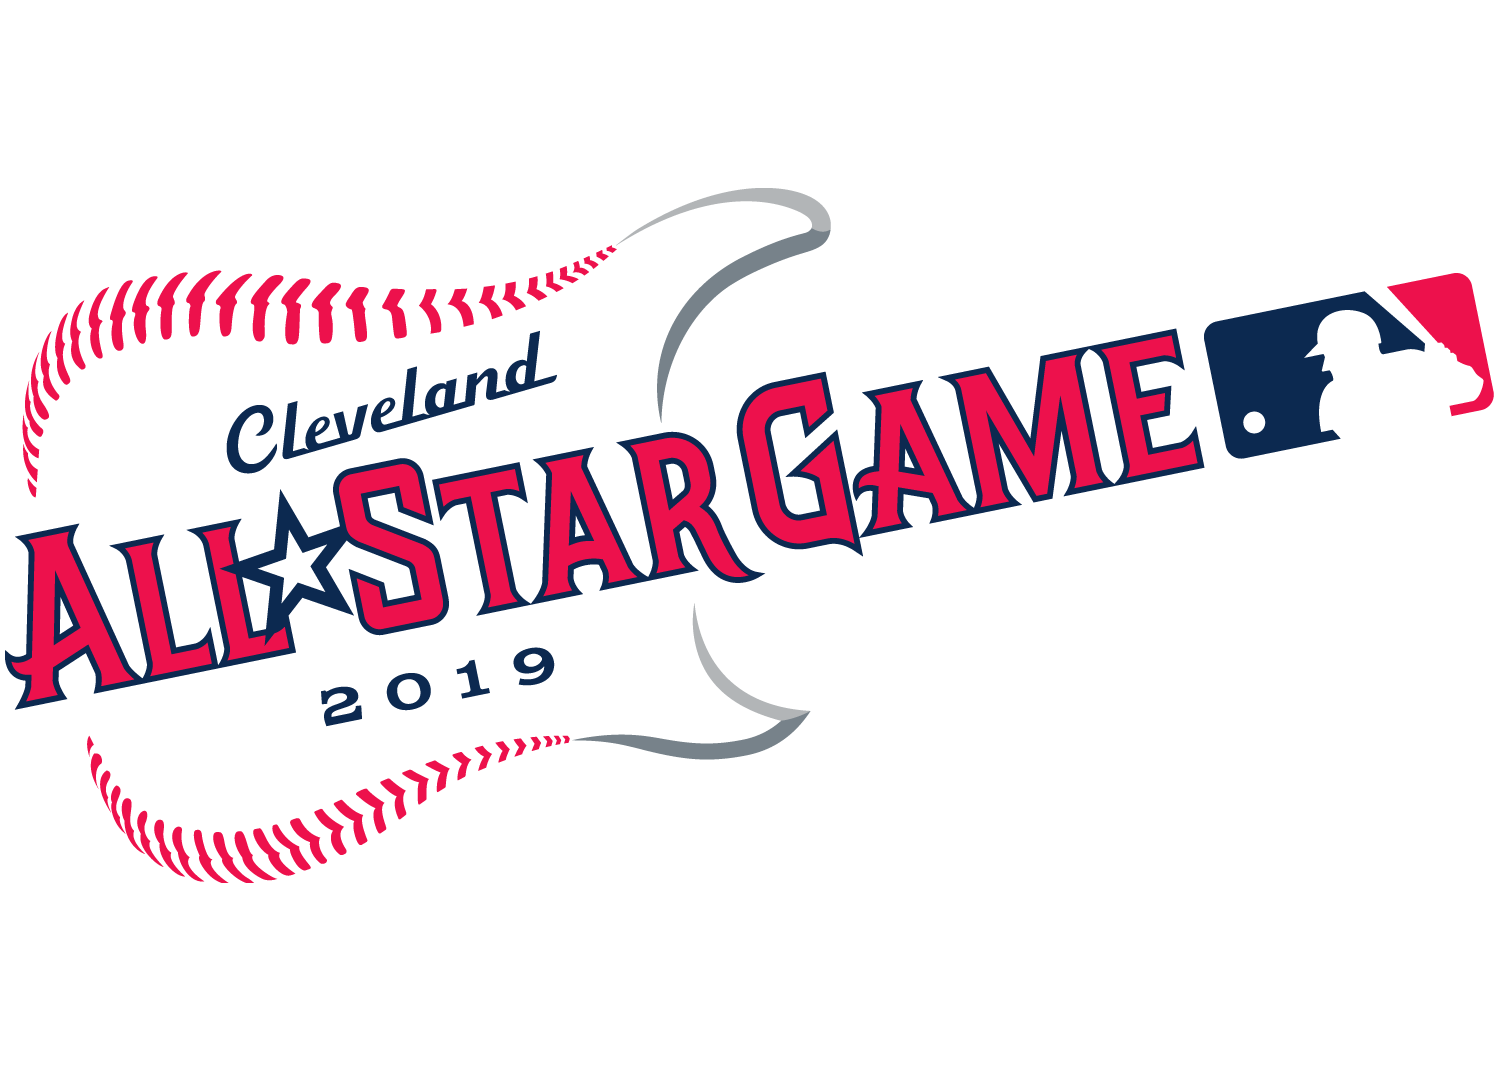 MLB All-Star Game ratings hit new record-low - Sports Media